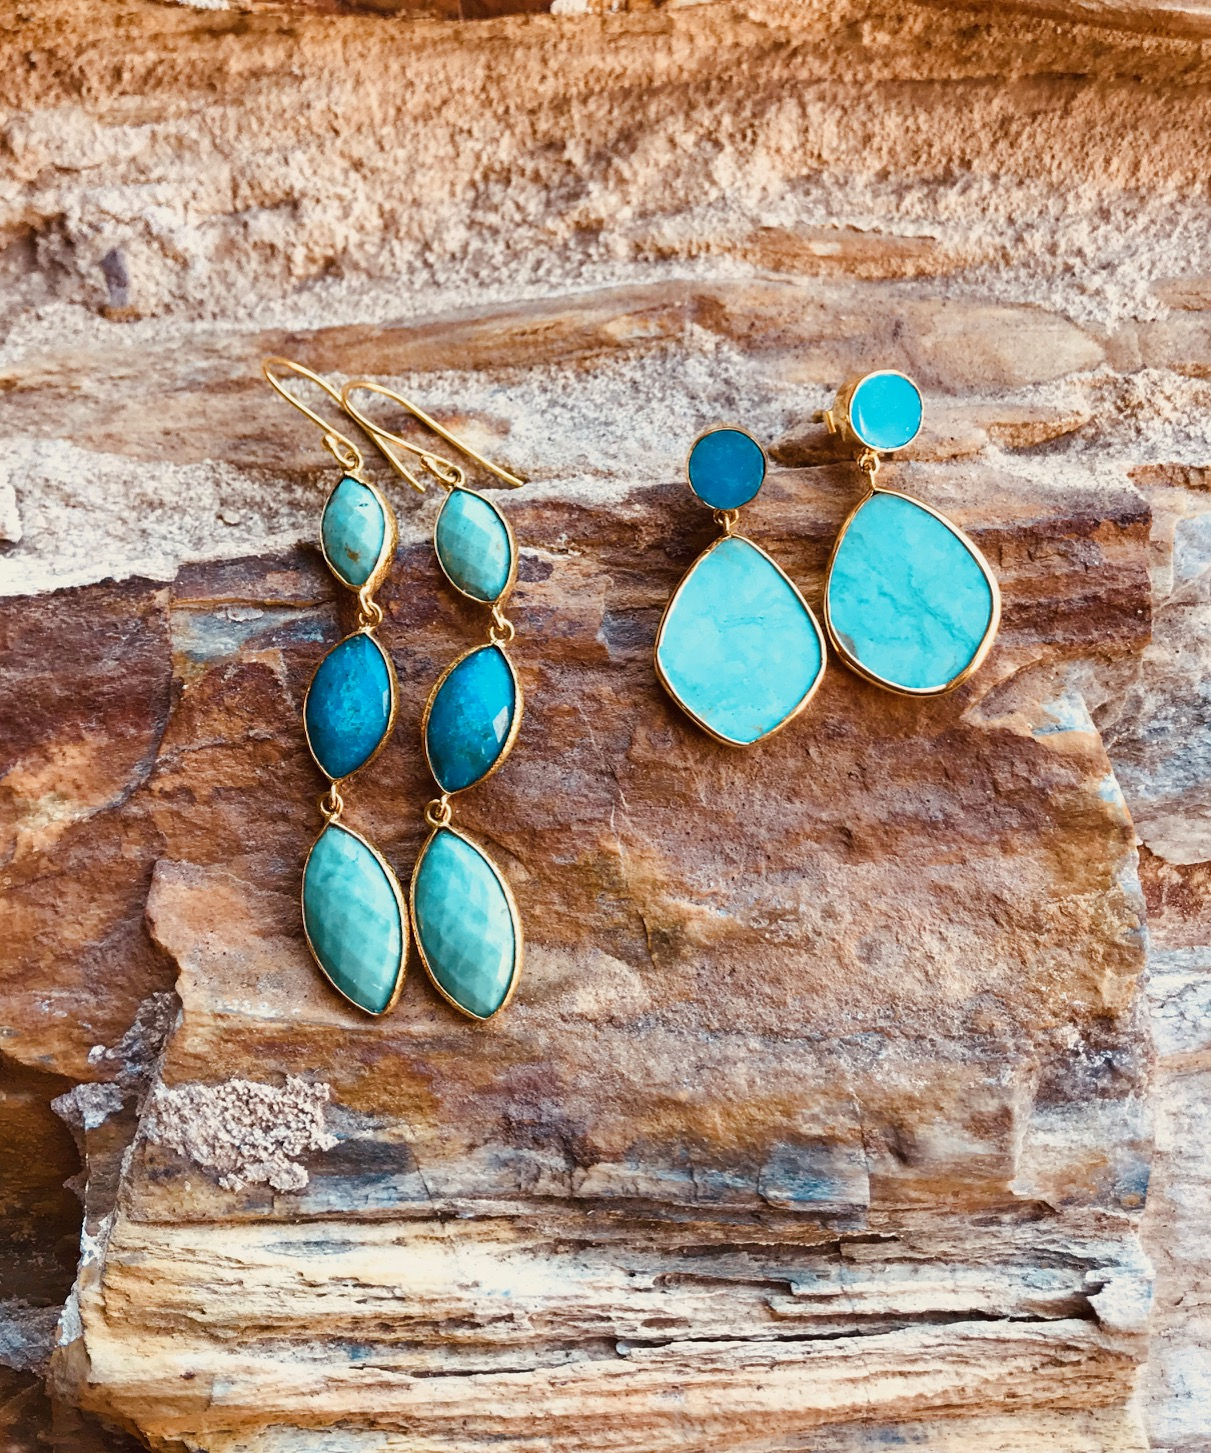 4th Annual Totally Turquoise Trunk Show & Sale – December 12th & 13th